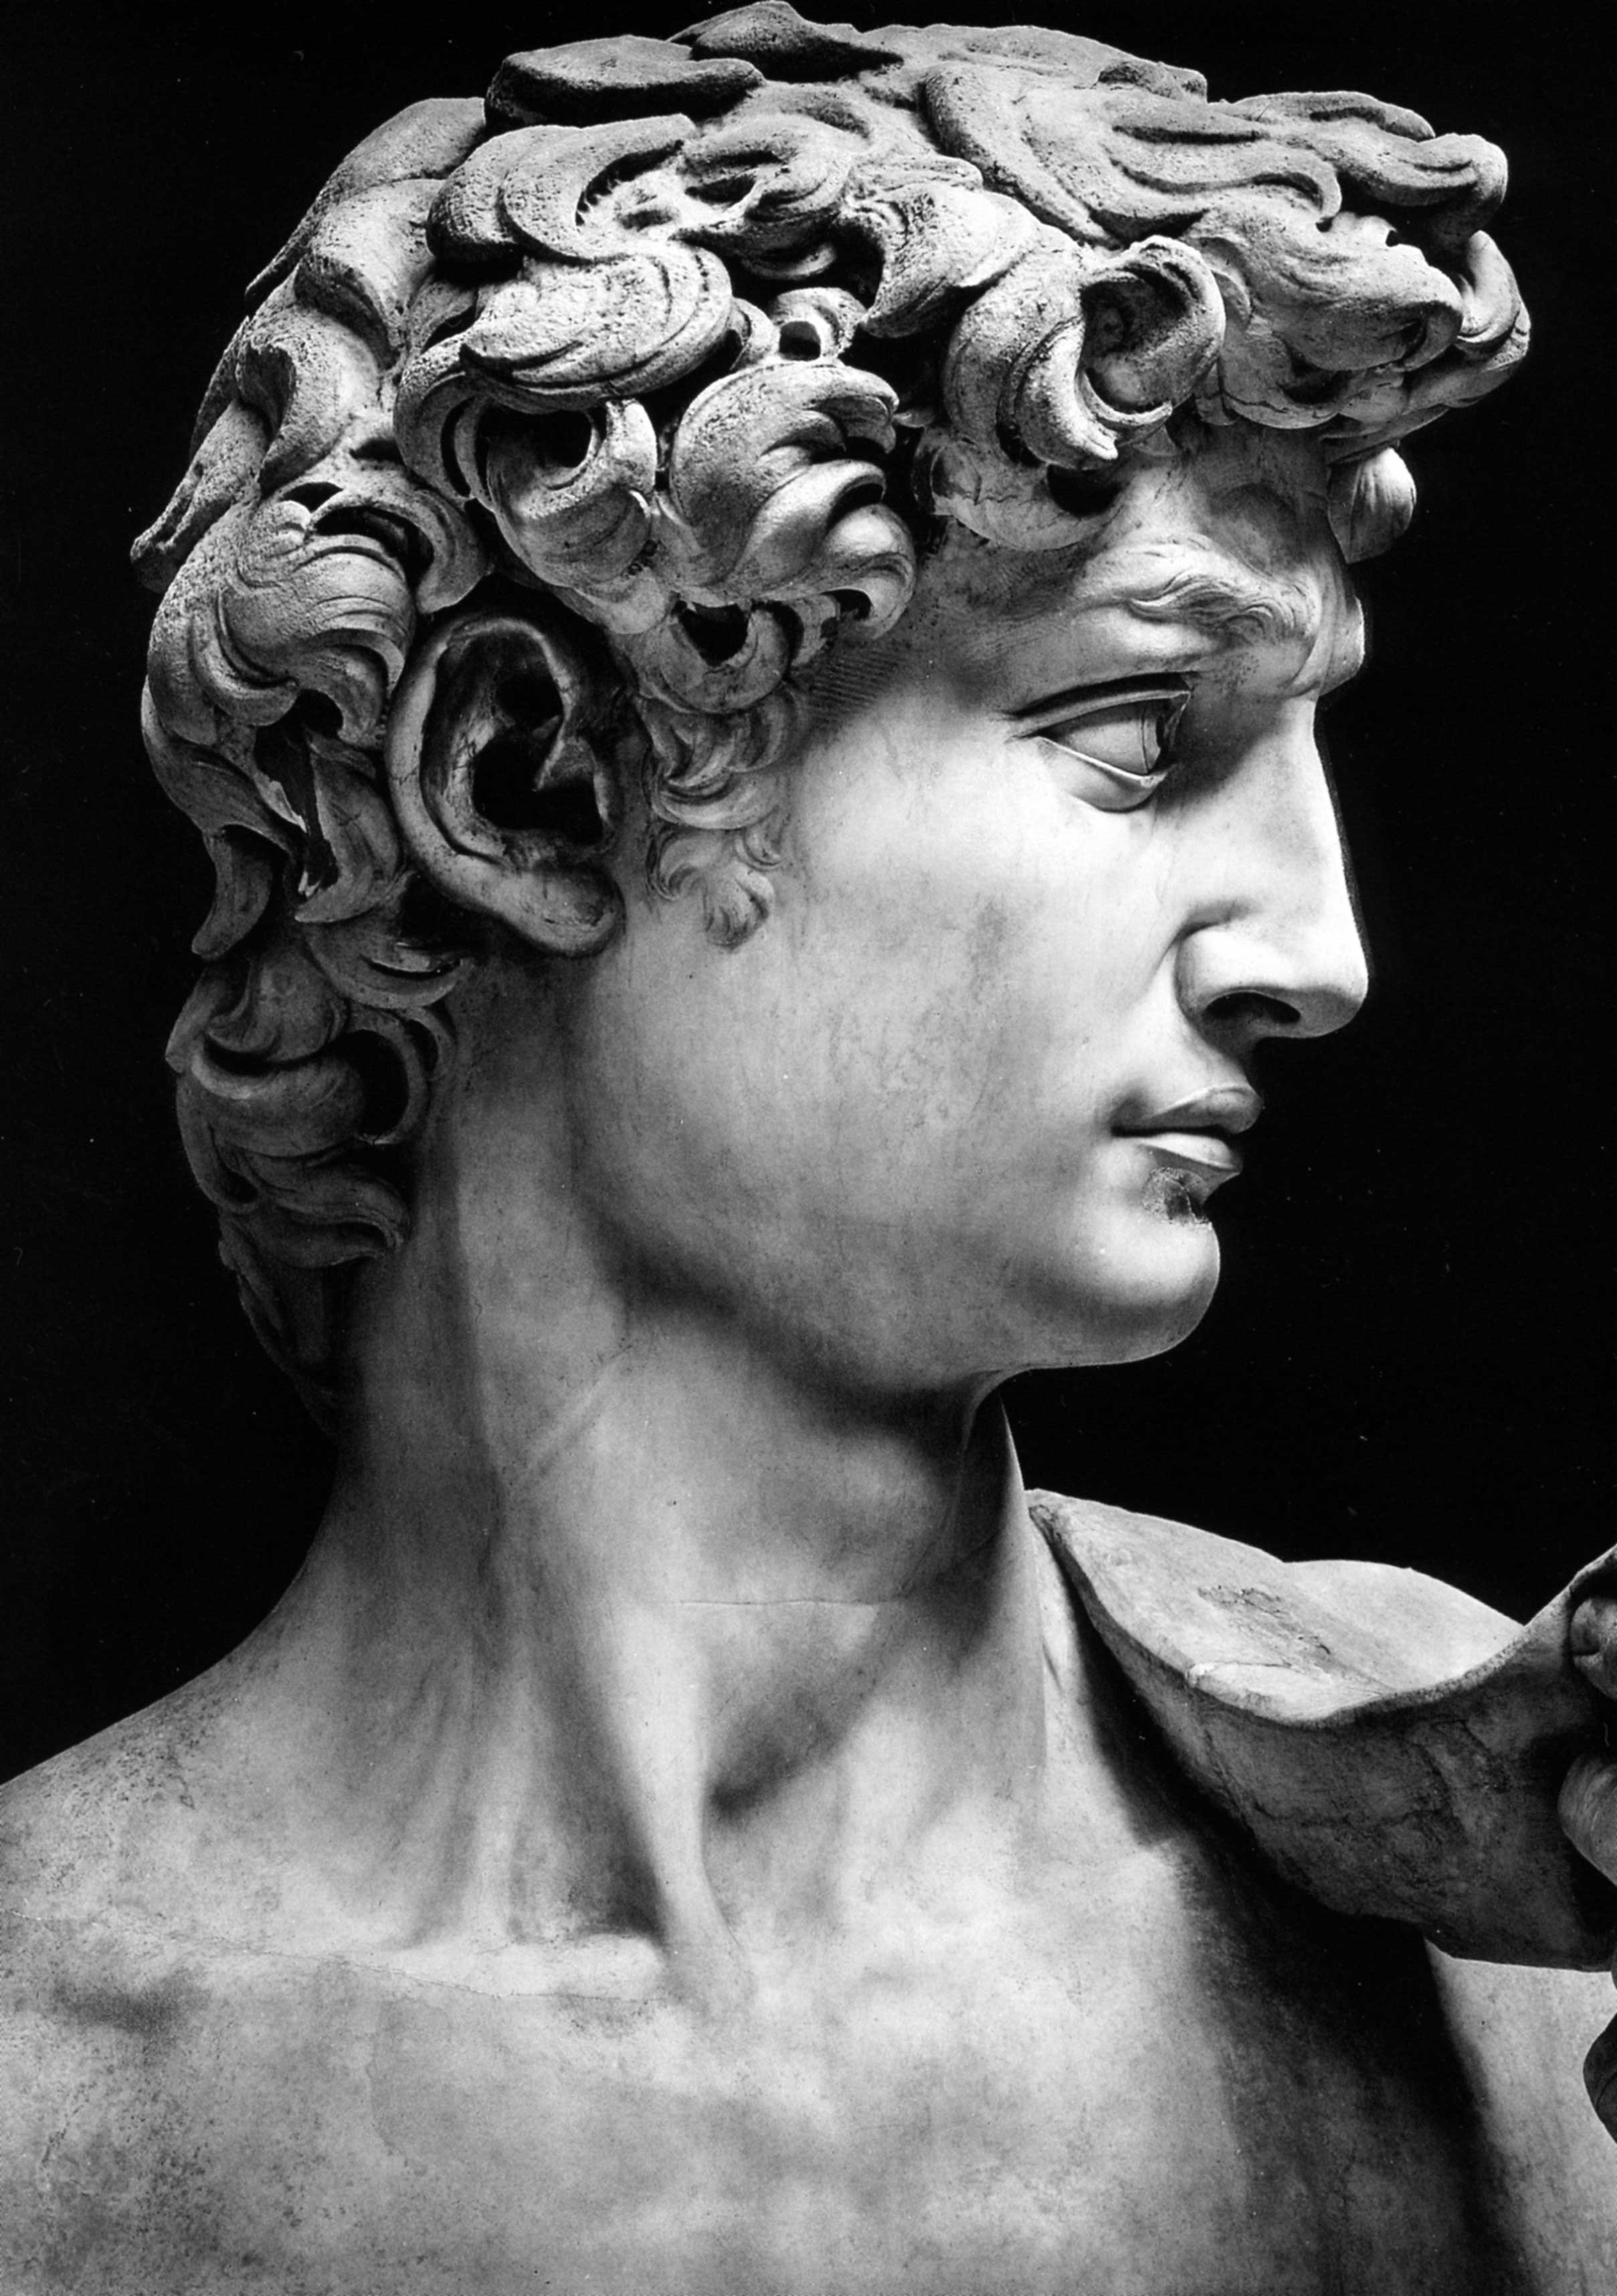 Michelangelo images - Download Hi Res Image Title Michelangelo David Author Michelangelo David Date Dopo Il 1873 Work Not On Display